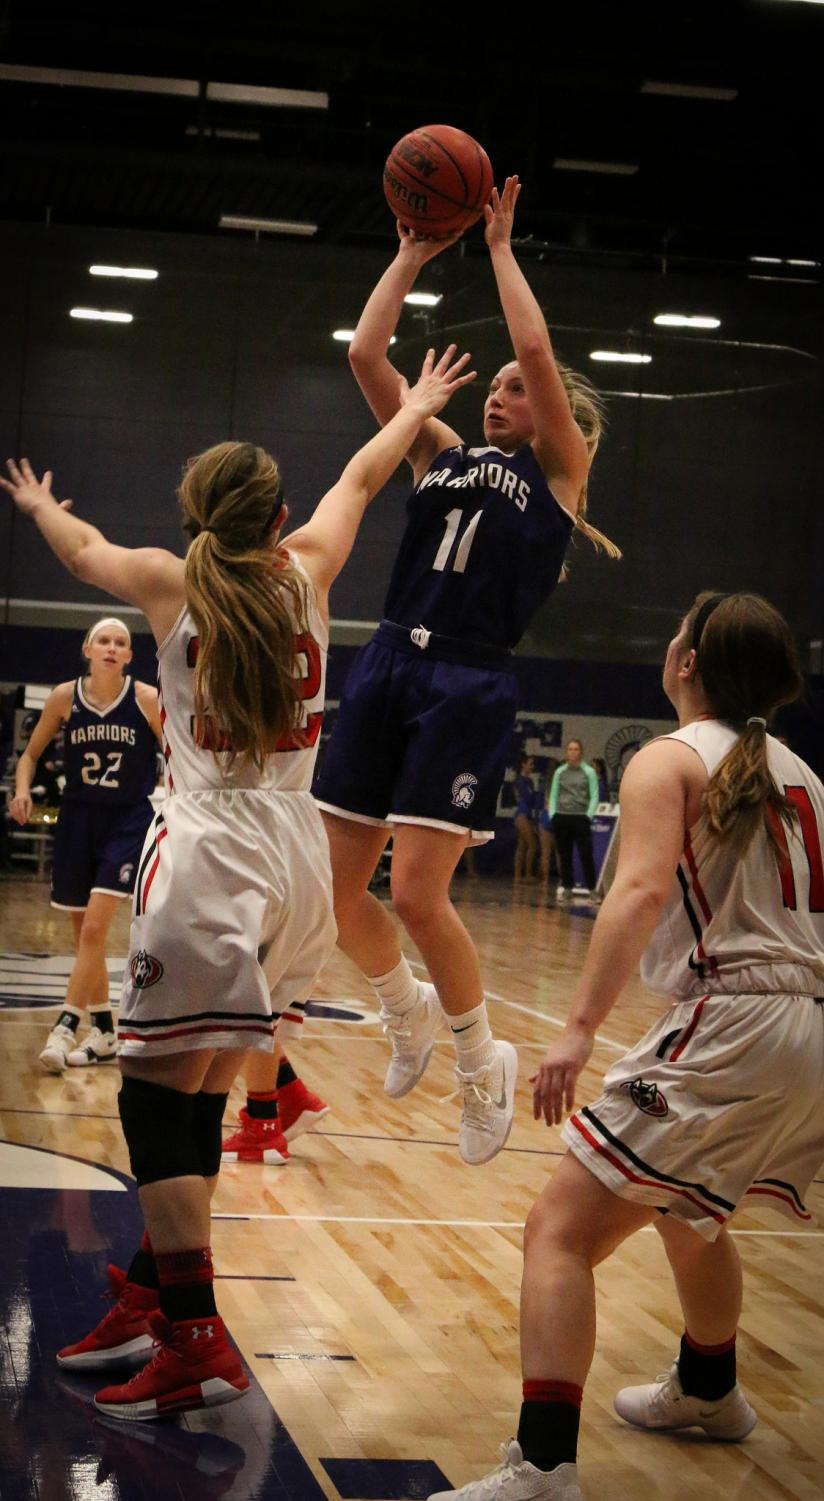 First year center Emily Kieck scores a jumpshot over St. Cloud defendent, Amanda Christianson, during Saturday night's game in McCowan Gymnasium. The Warriors lost to the Huskies 55-62.